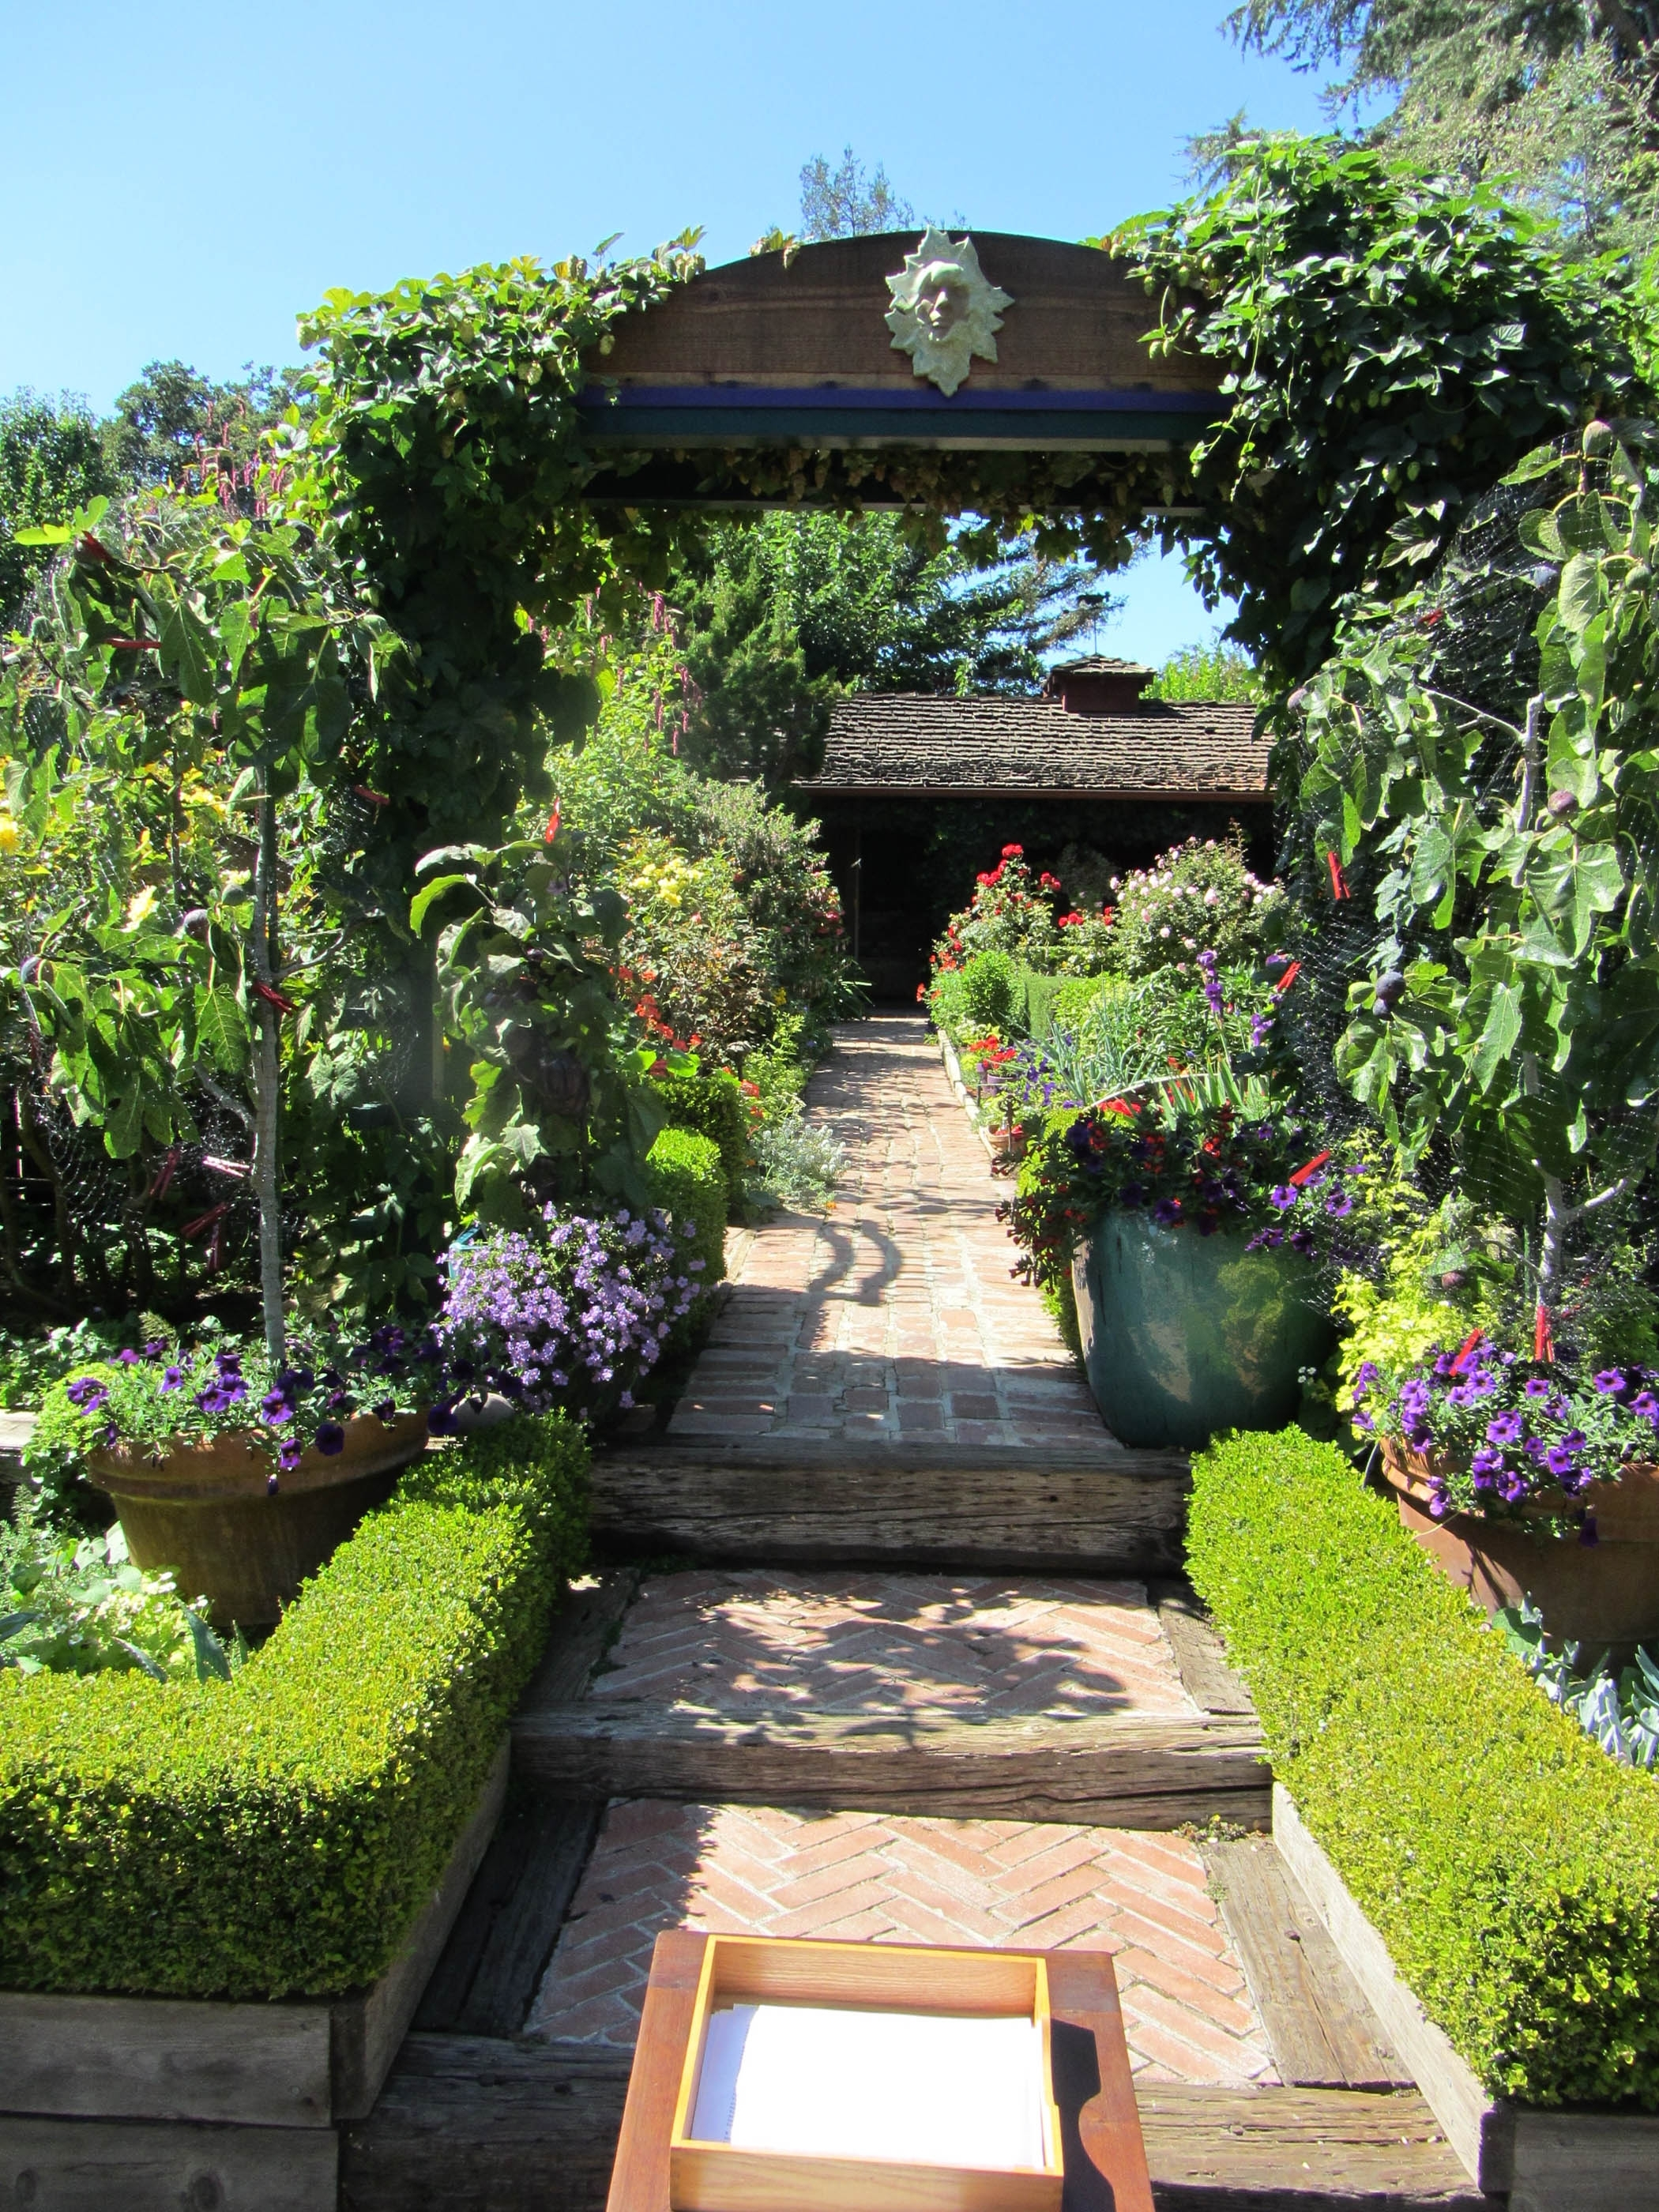 Image of: Garden Design With Arches And Archways With Regard To Edible Landscape Design Good Ideas Edible Landscape Design